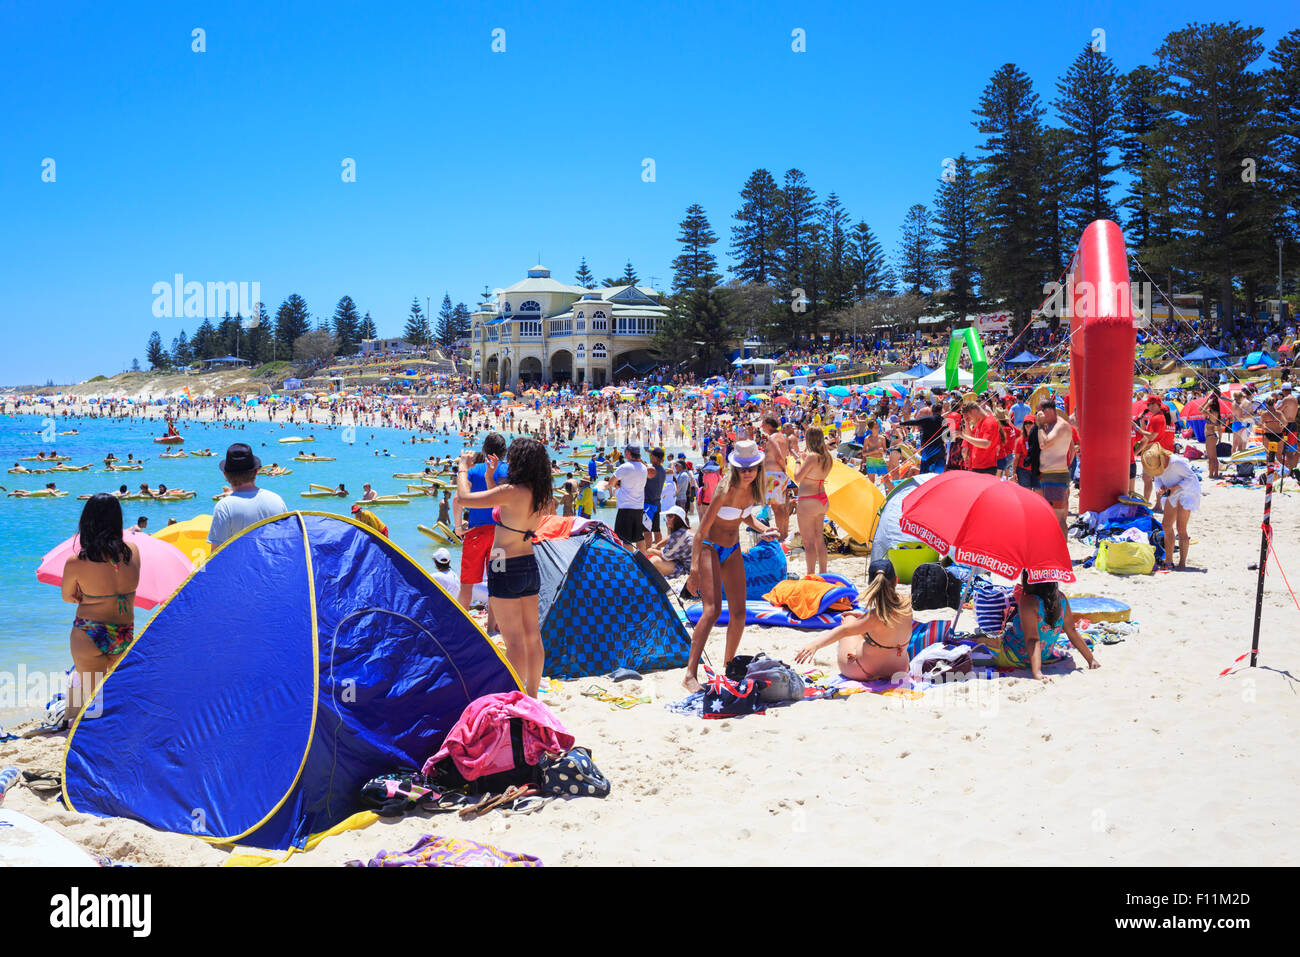 A very busy and crowded beach on Australia Day 2015 - Stock Image